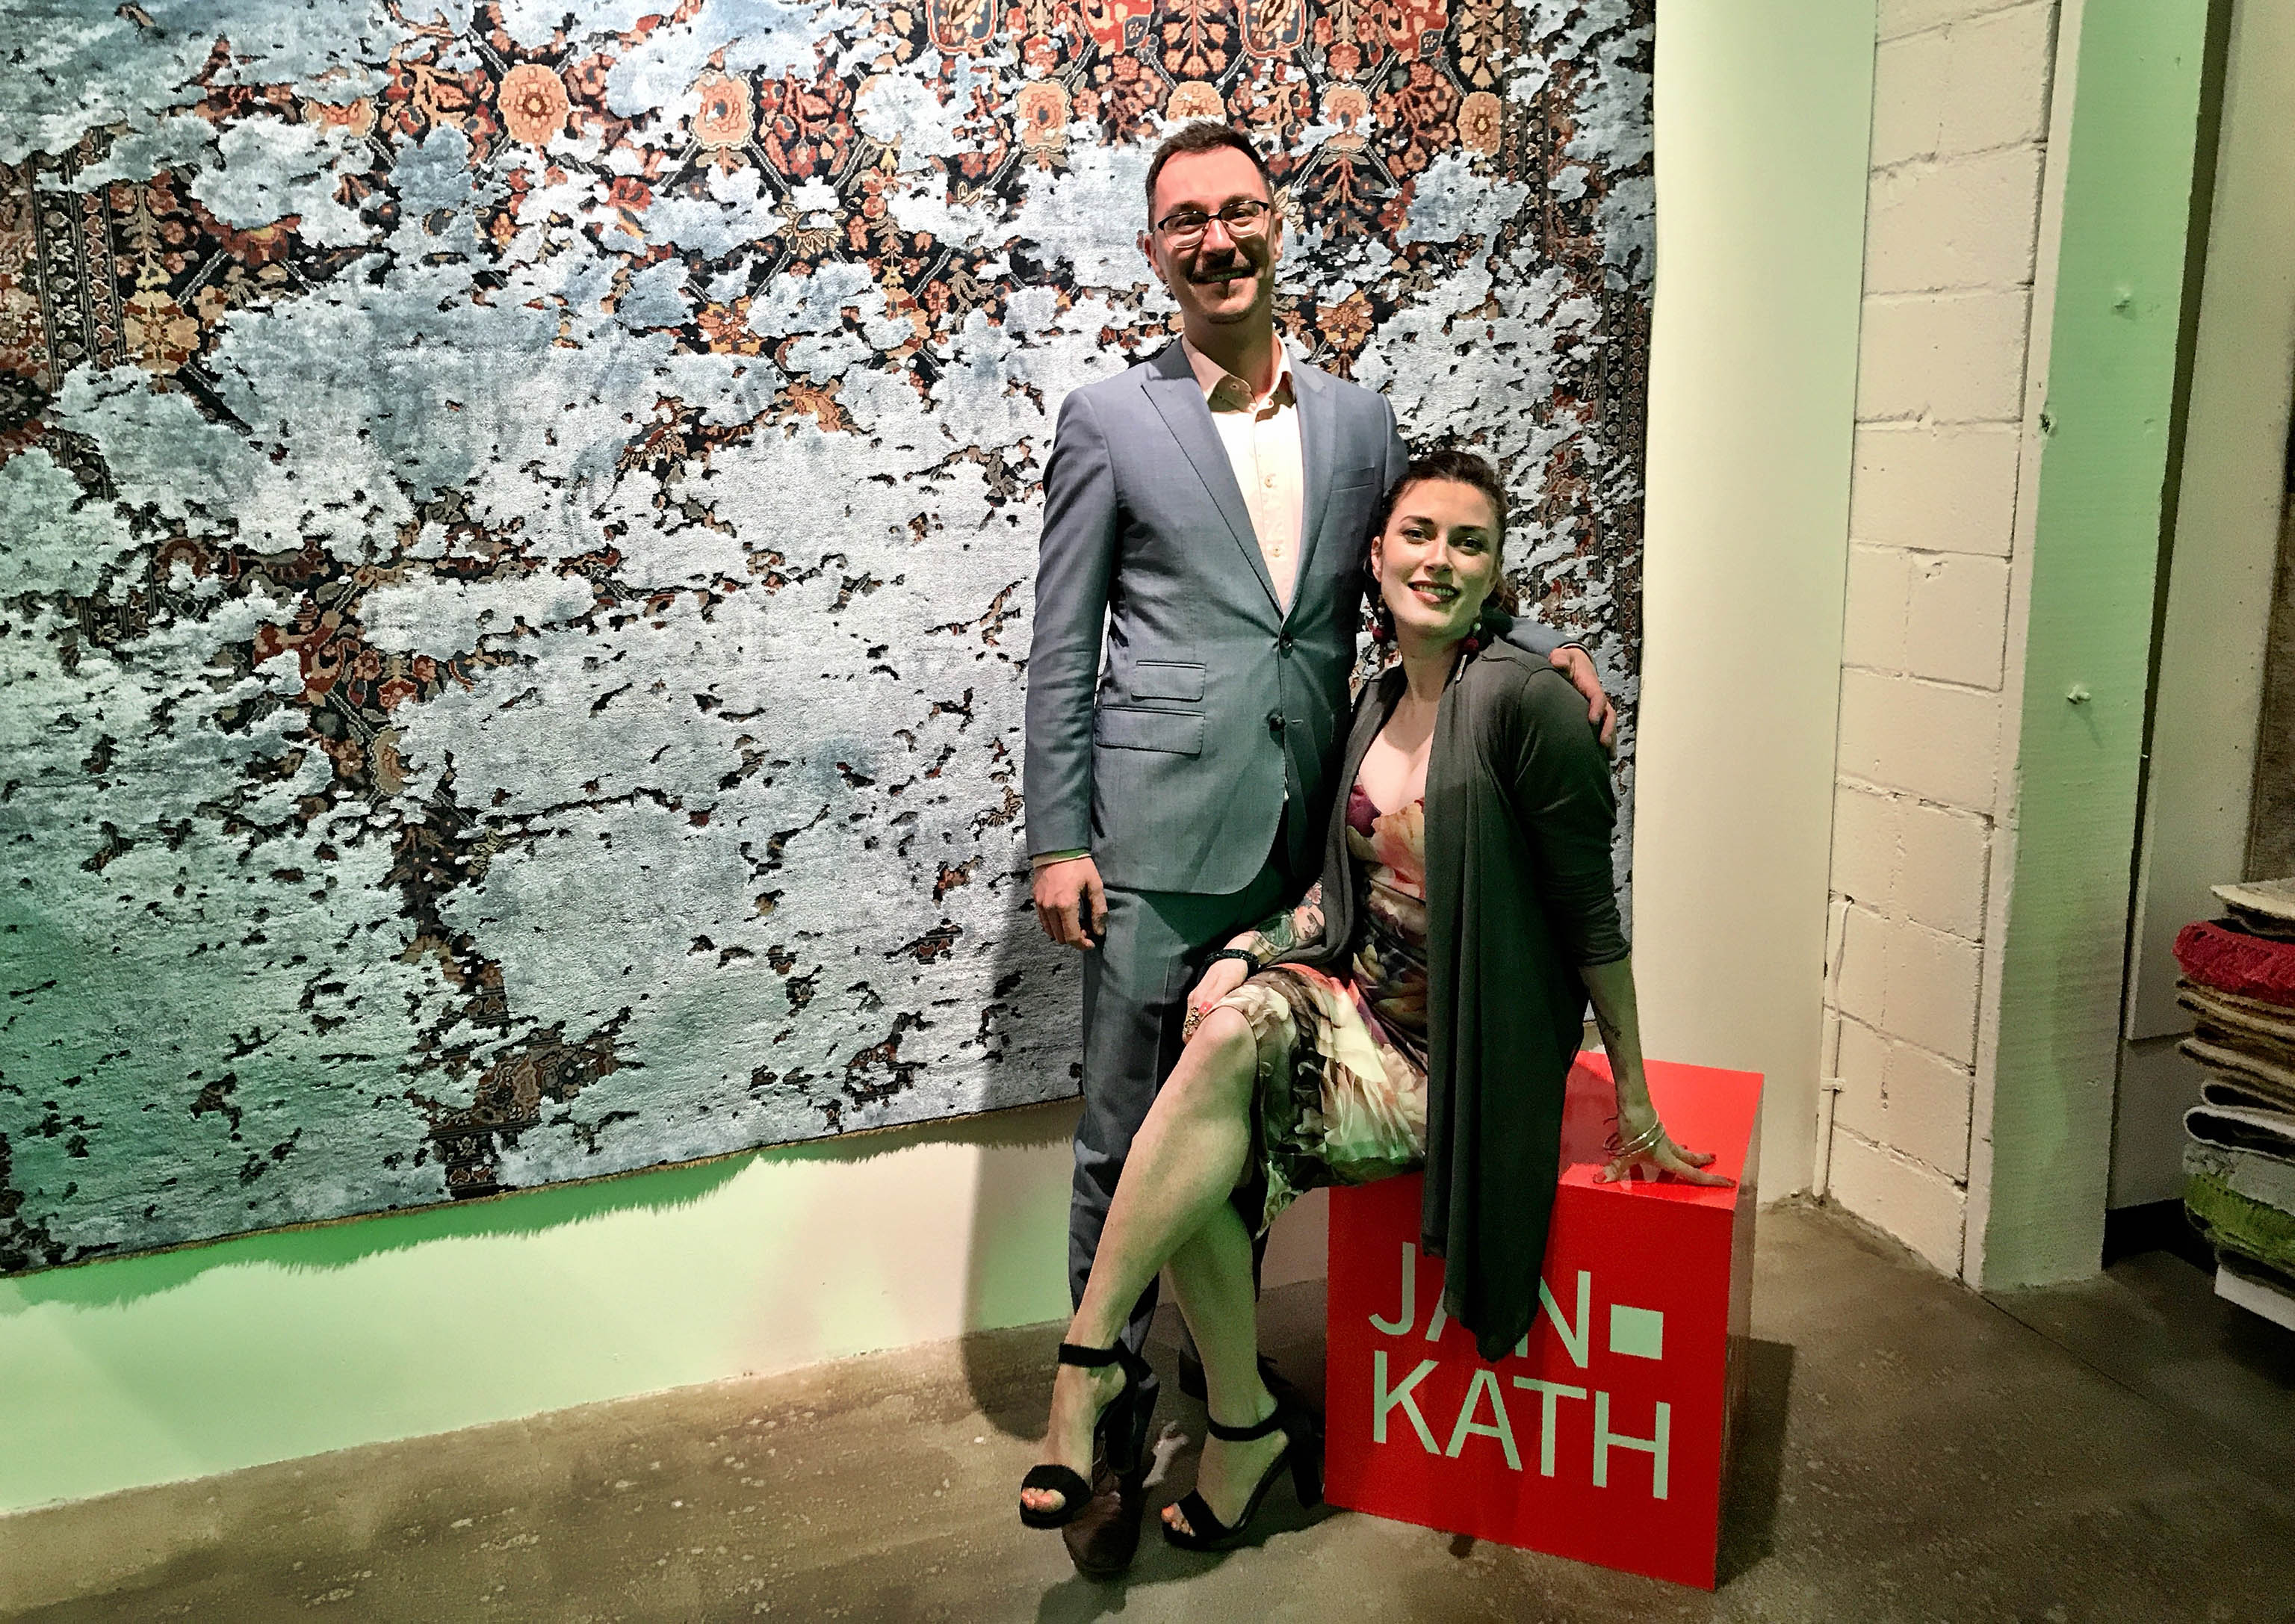 Yvan Semenowycz and Robyn Waffle are a dynamic and intoxicating couple who run Finlay and Kath's new Jan Kath Toronto showroom.   Image by The Ruggist.